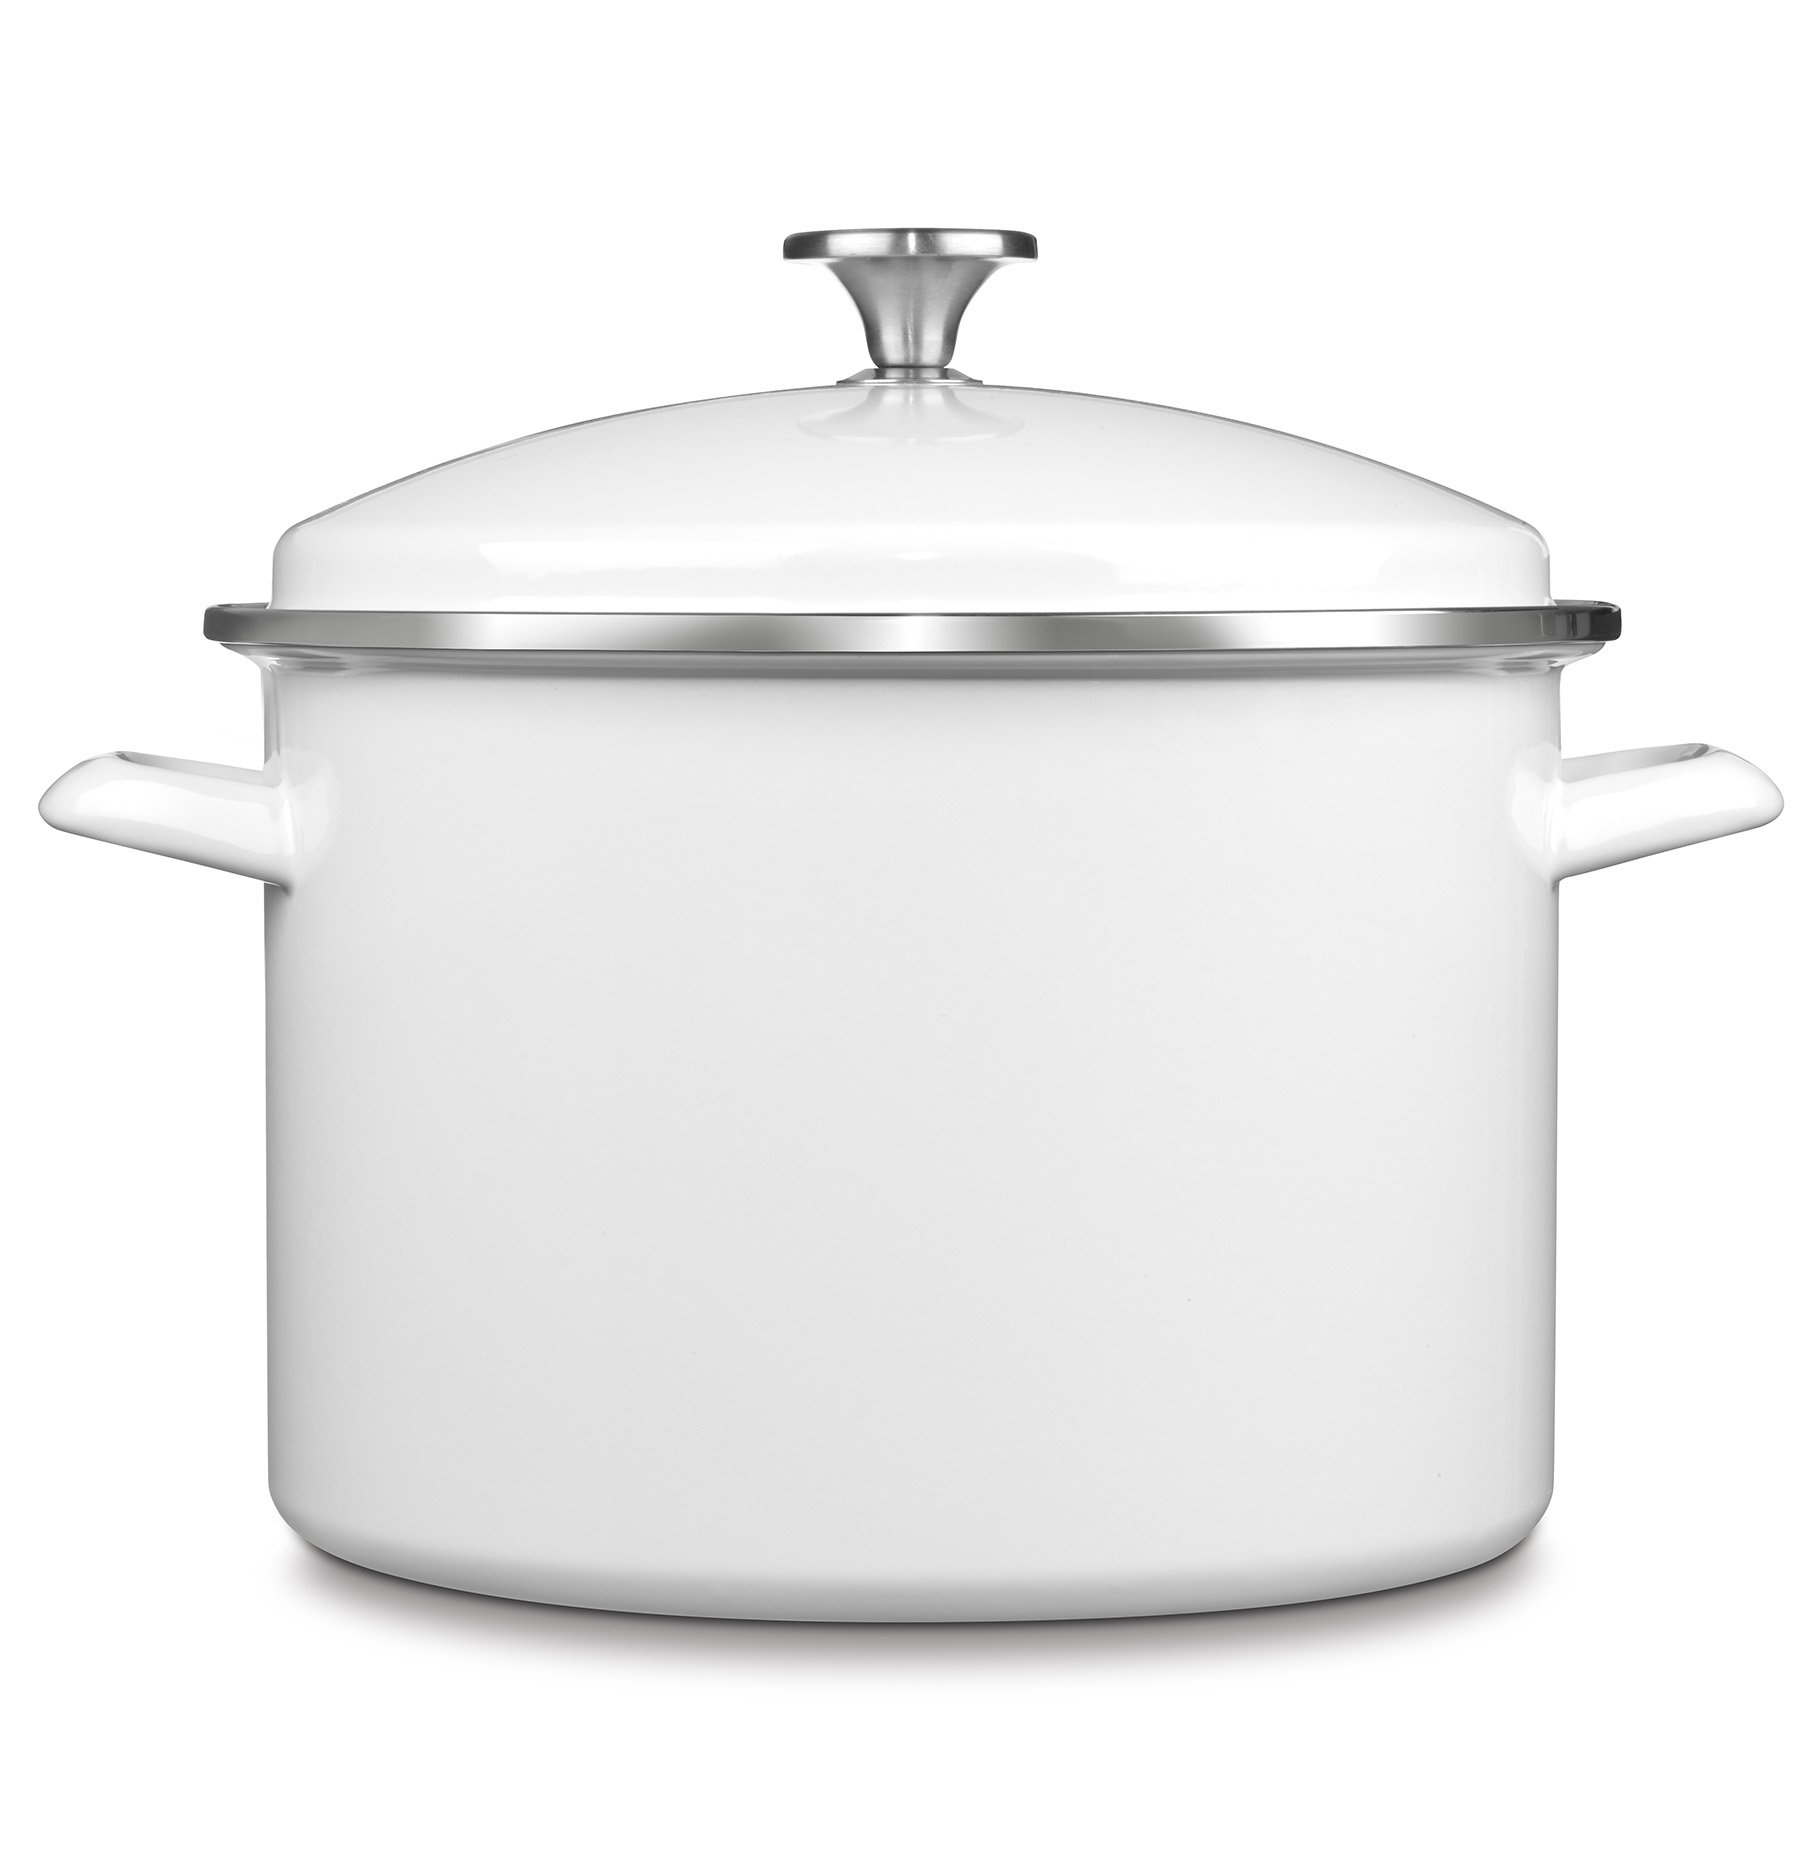 Cuisinart EOS106-28W Chef's Classic Enamel on Steel Stockpot with Cover, 10-Quart, White